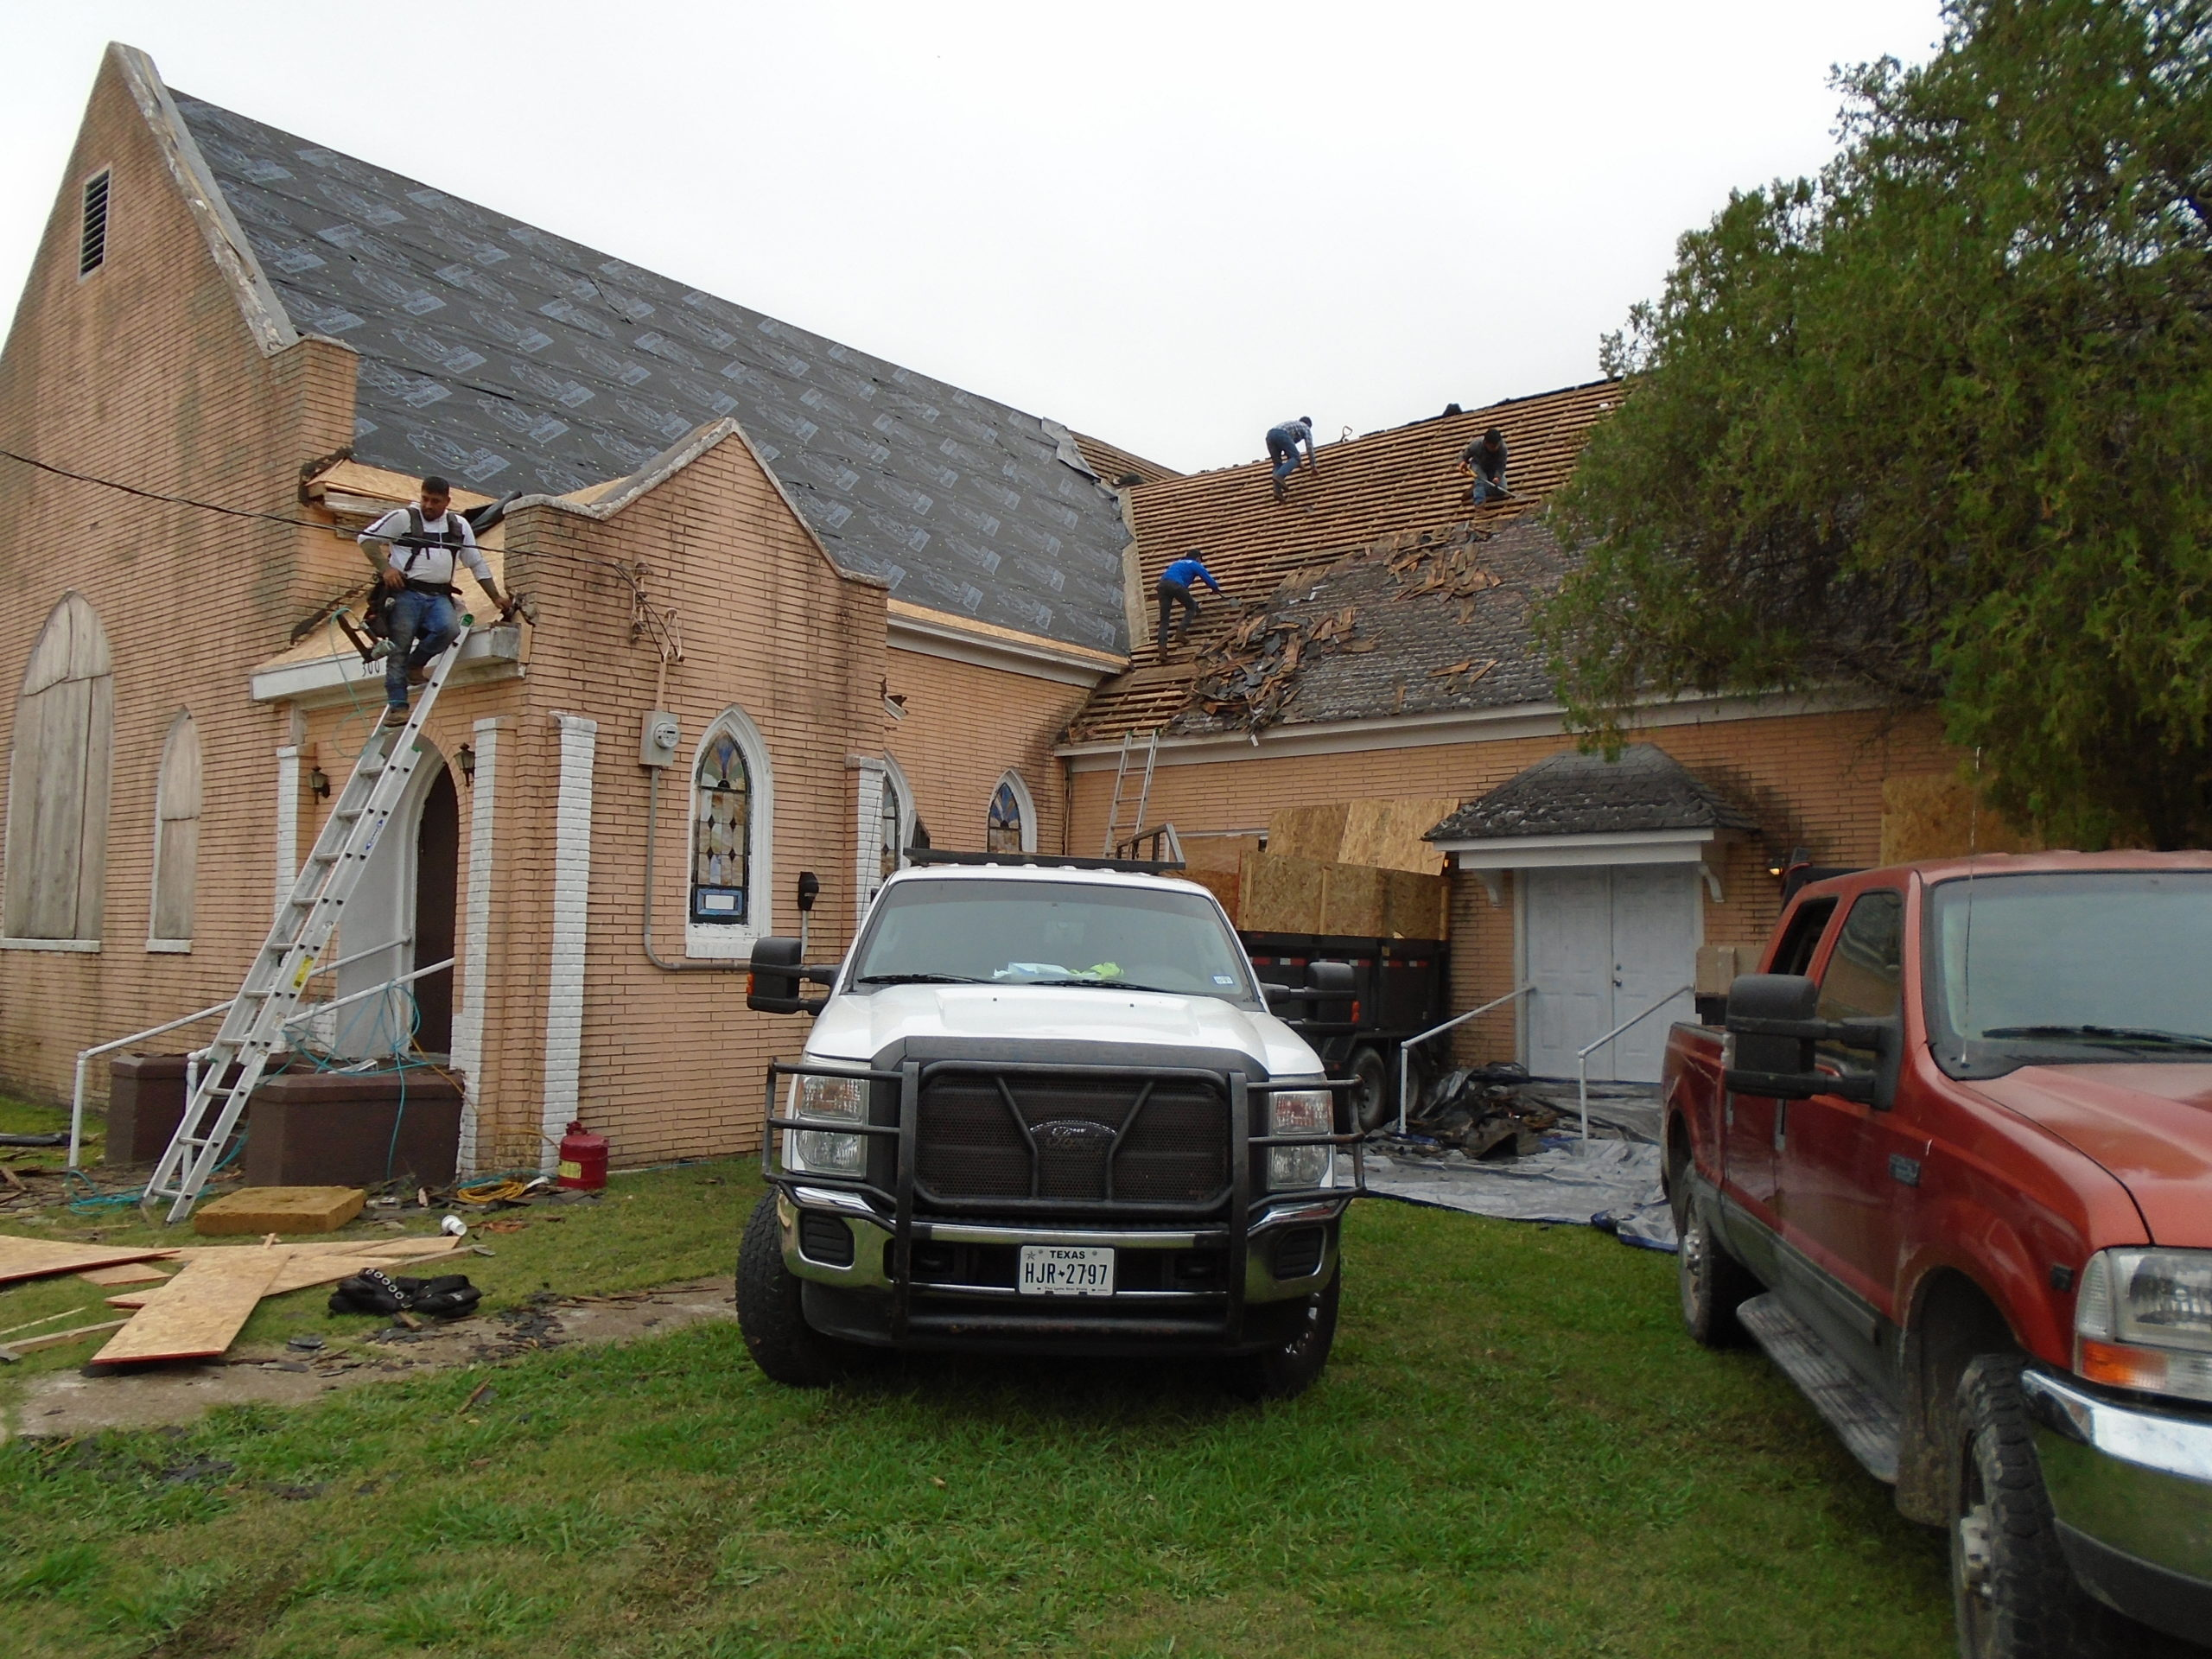 Best Roofing & Remodeling Waco, Texas New Church Roof